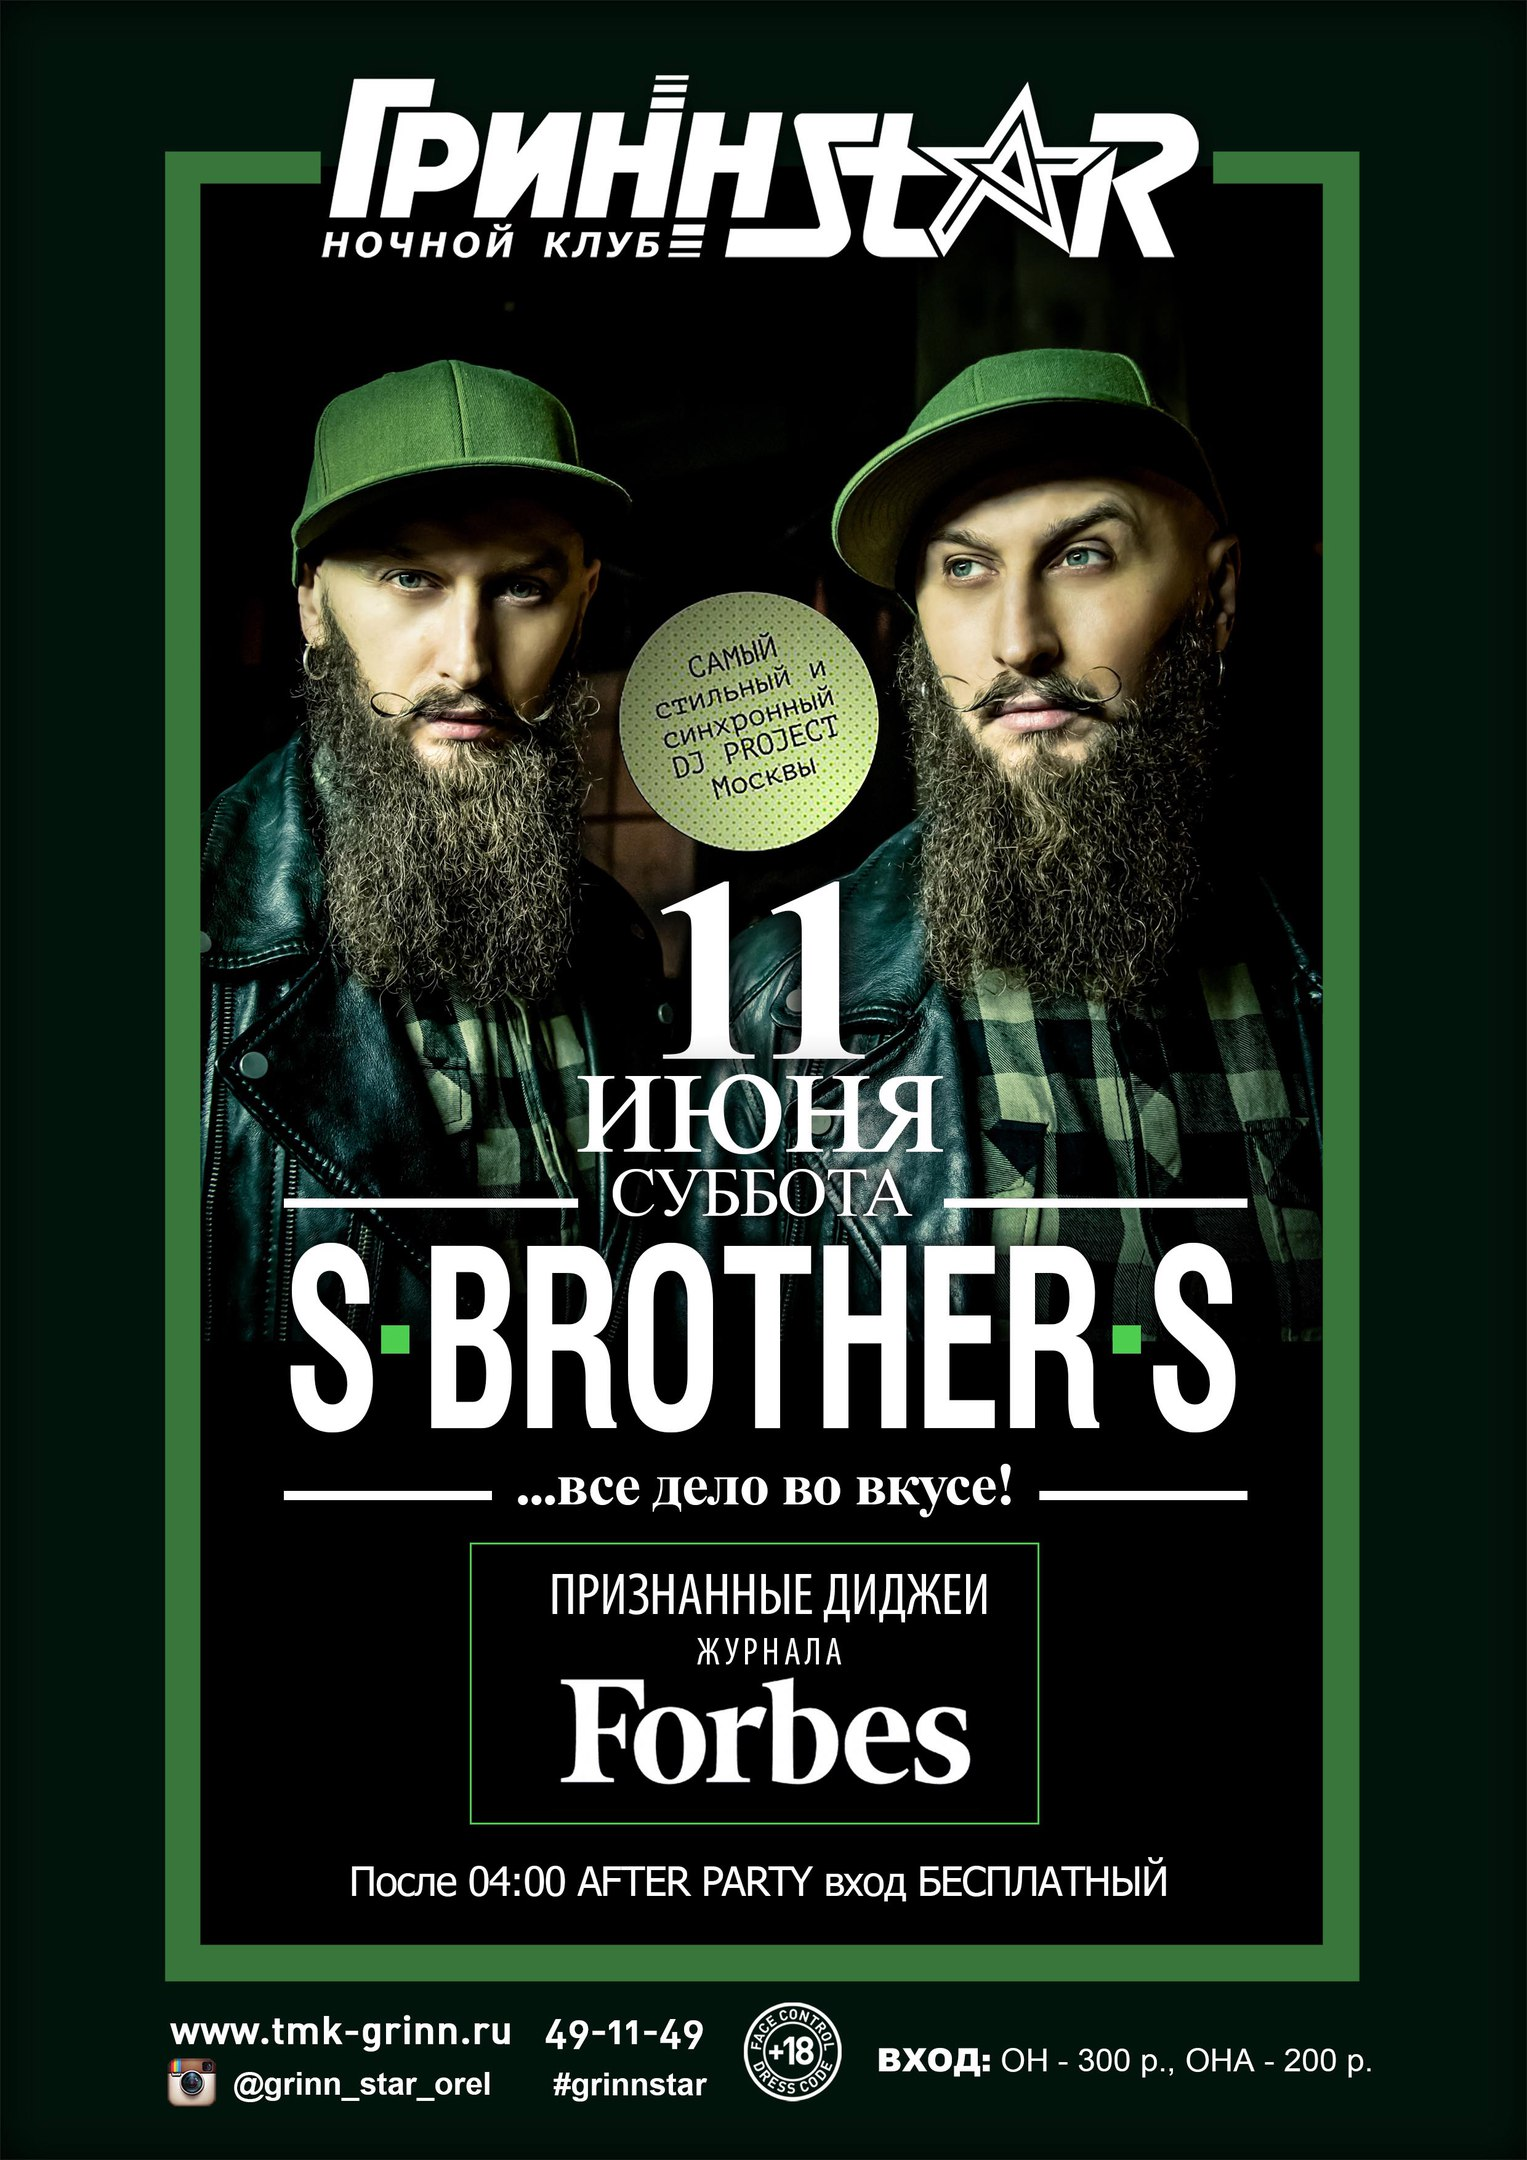 S-Brothers-s